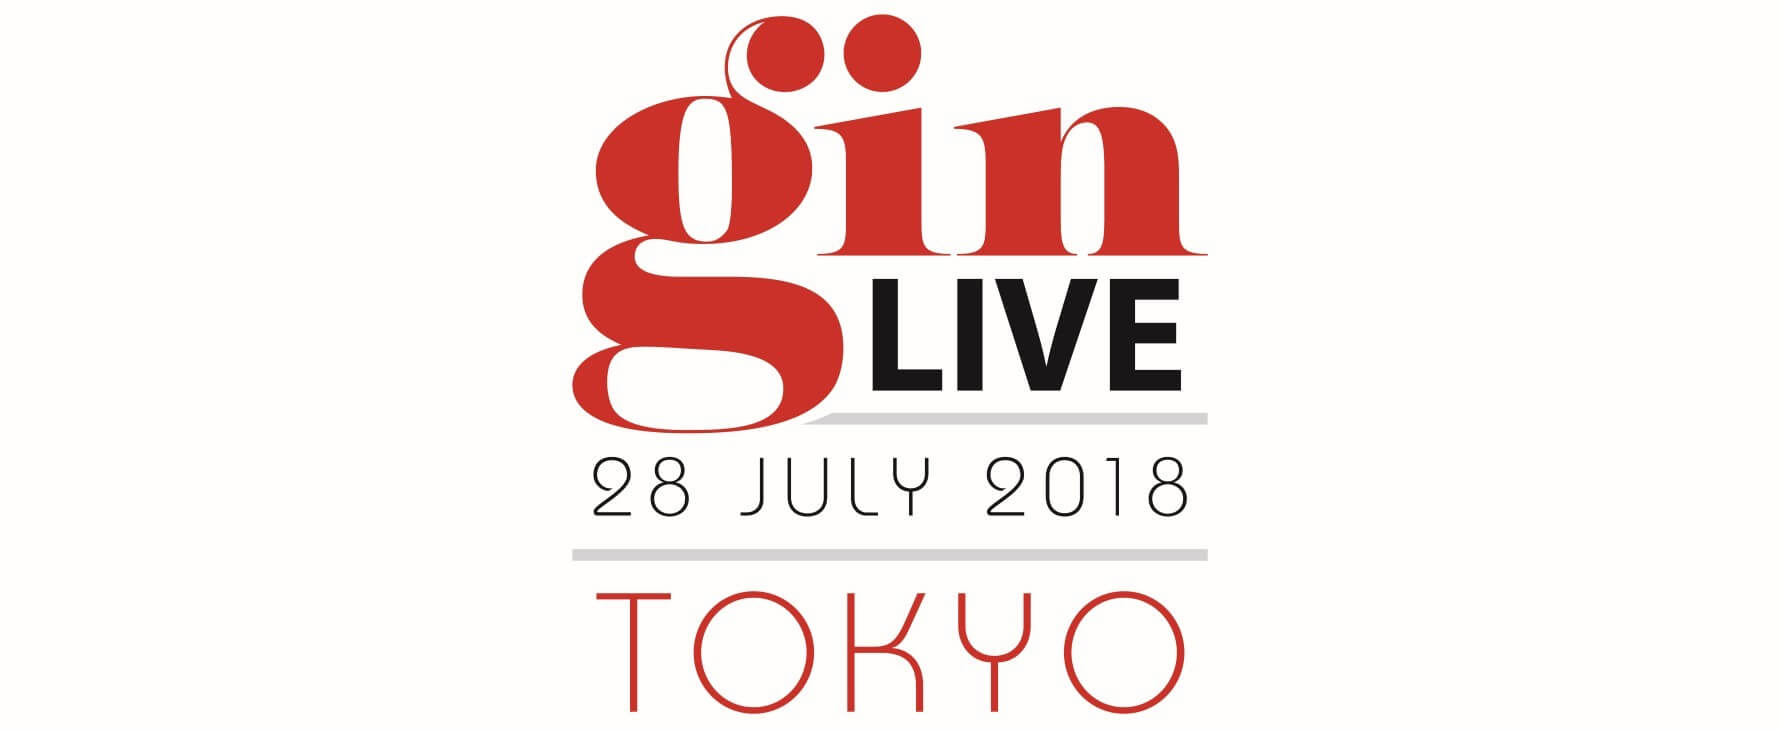 Gin Live Tokyo 2018 is being held on July 28